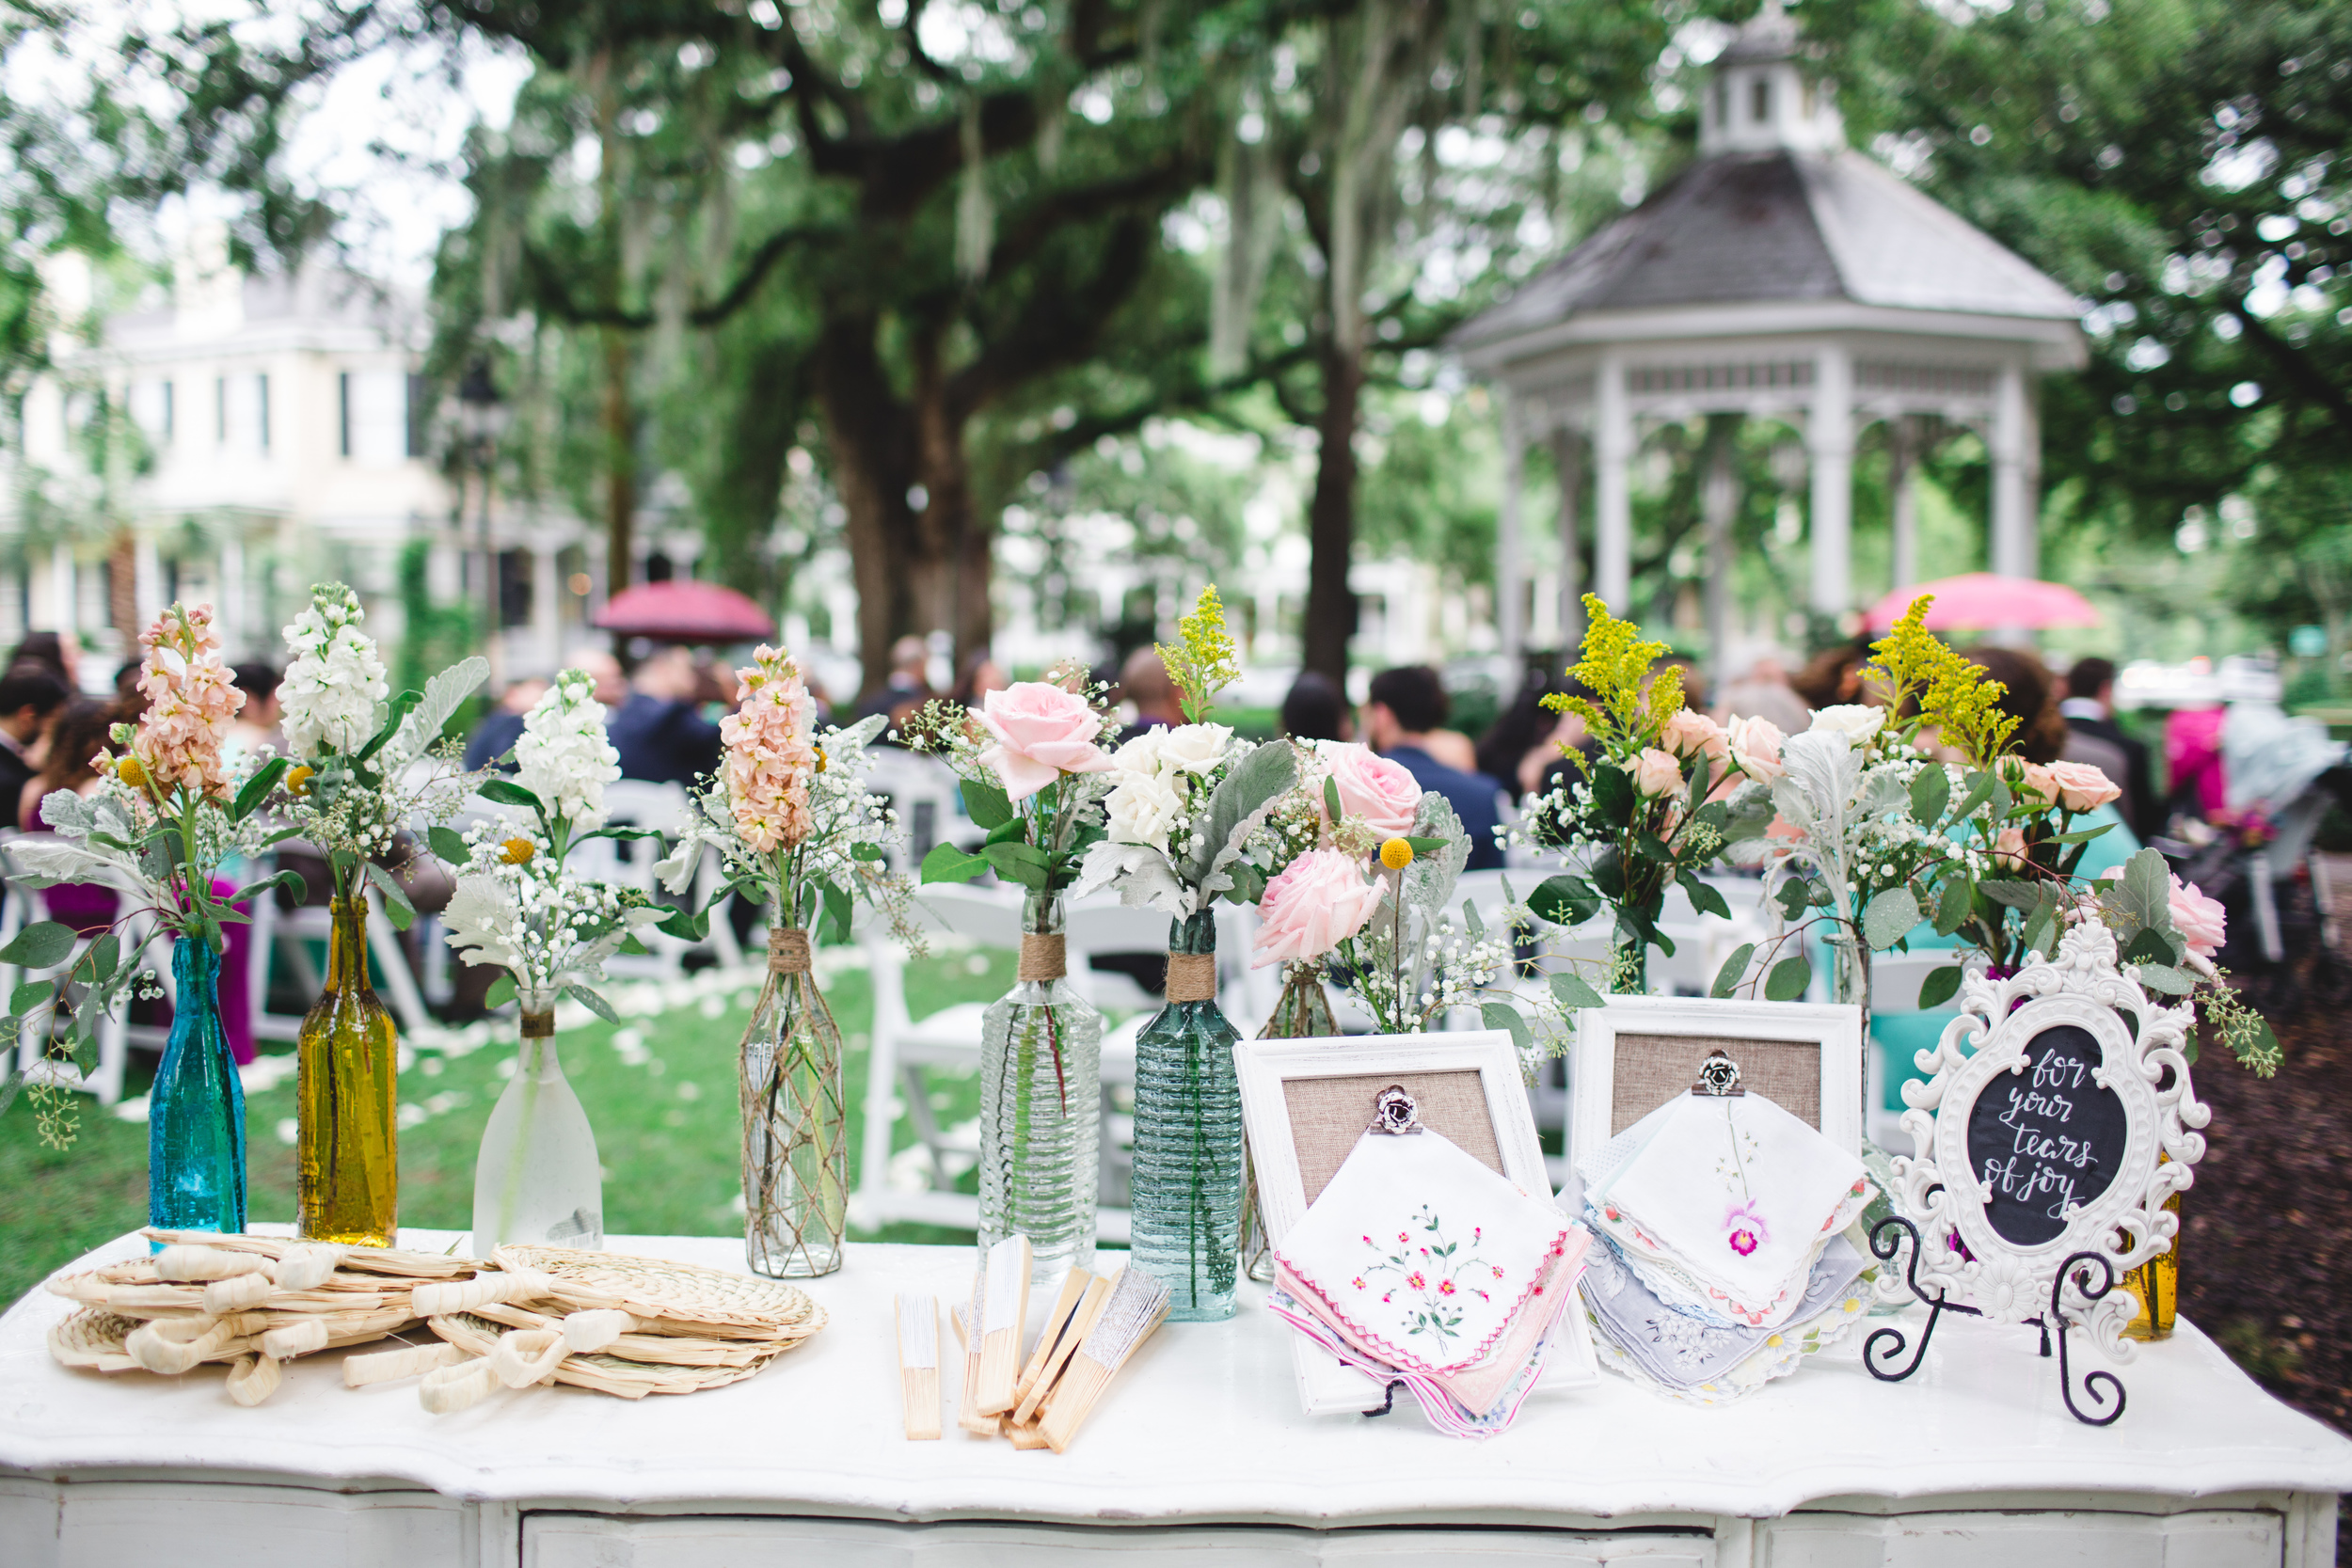 daniela-and-pedro-wedding-izzy-hudgins-photography-a-to-zinnias-whitfield-square-charles-h-morris-center-wedding-ivoyy-and-beau-bridal-boutique-dorie-hayley-paige-savannah-wedding-planner-savannah-bridal-boutique-savannah-weddings-21.jpg